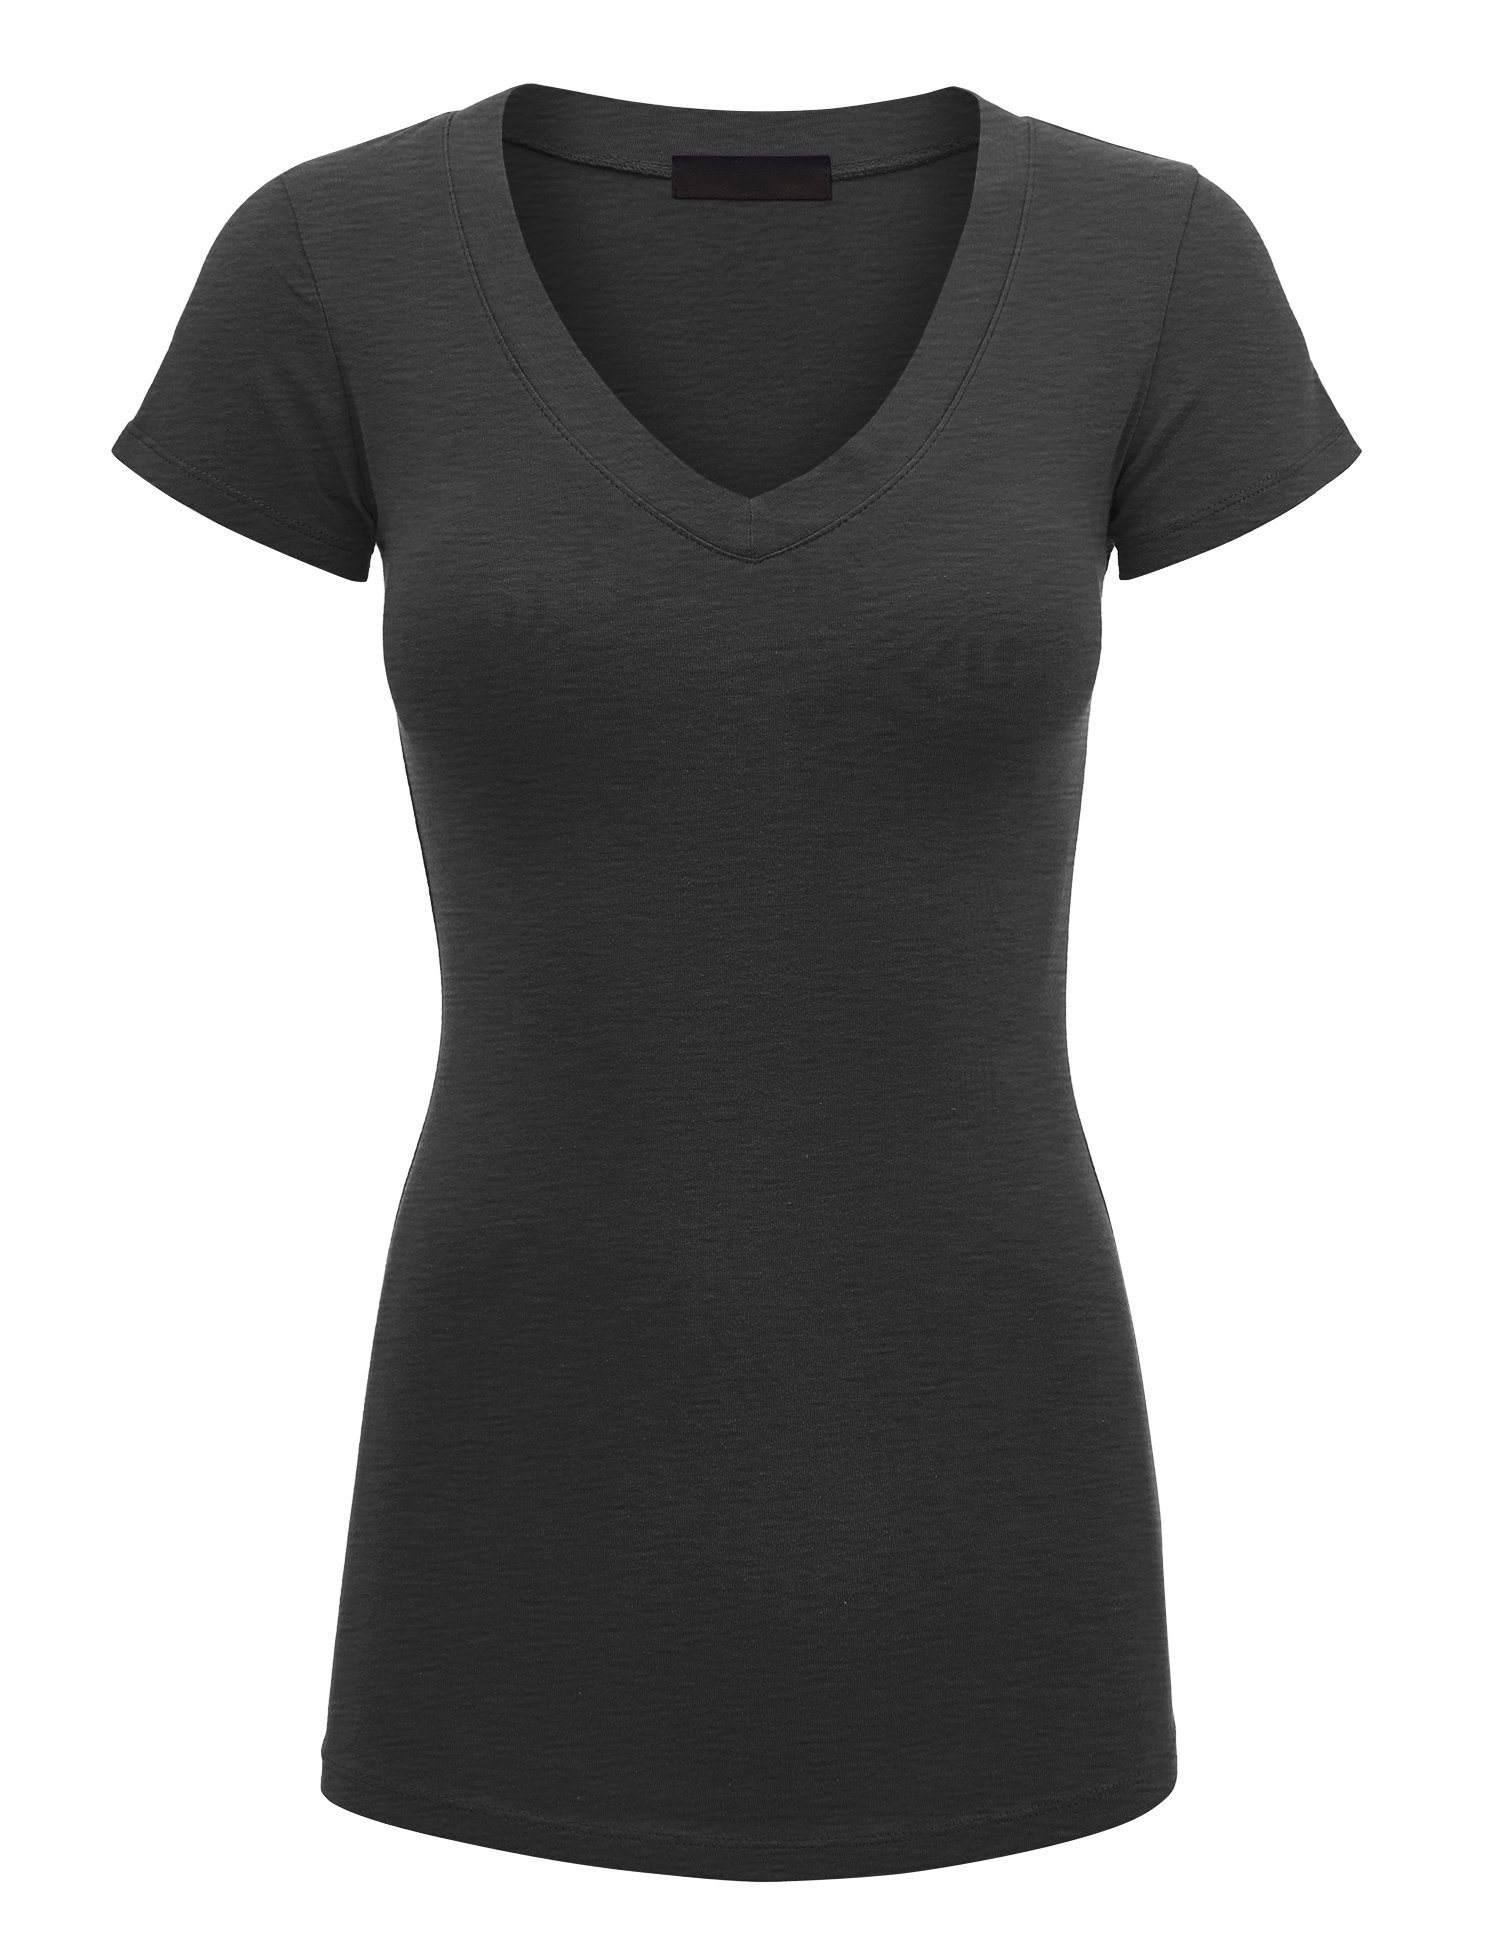 Lock and Love Women's Basic Slim Fitted Short Sleeve Casual V Neck Cotton T Shirt